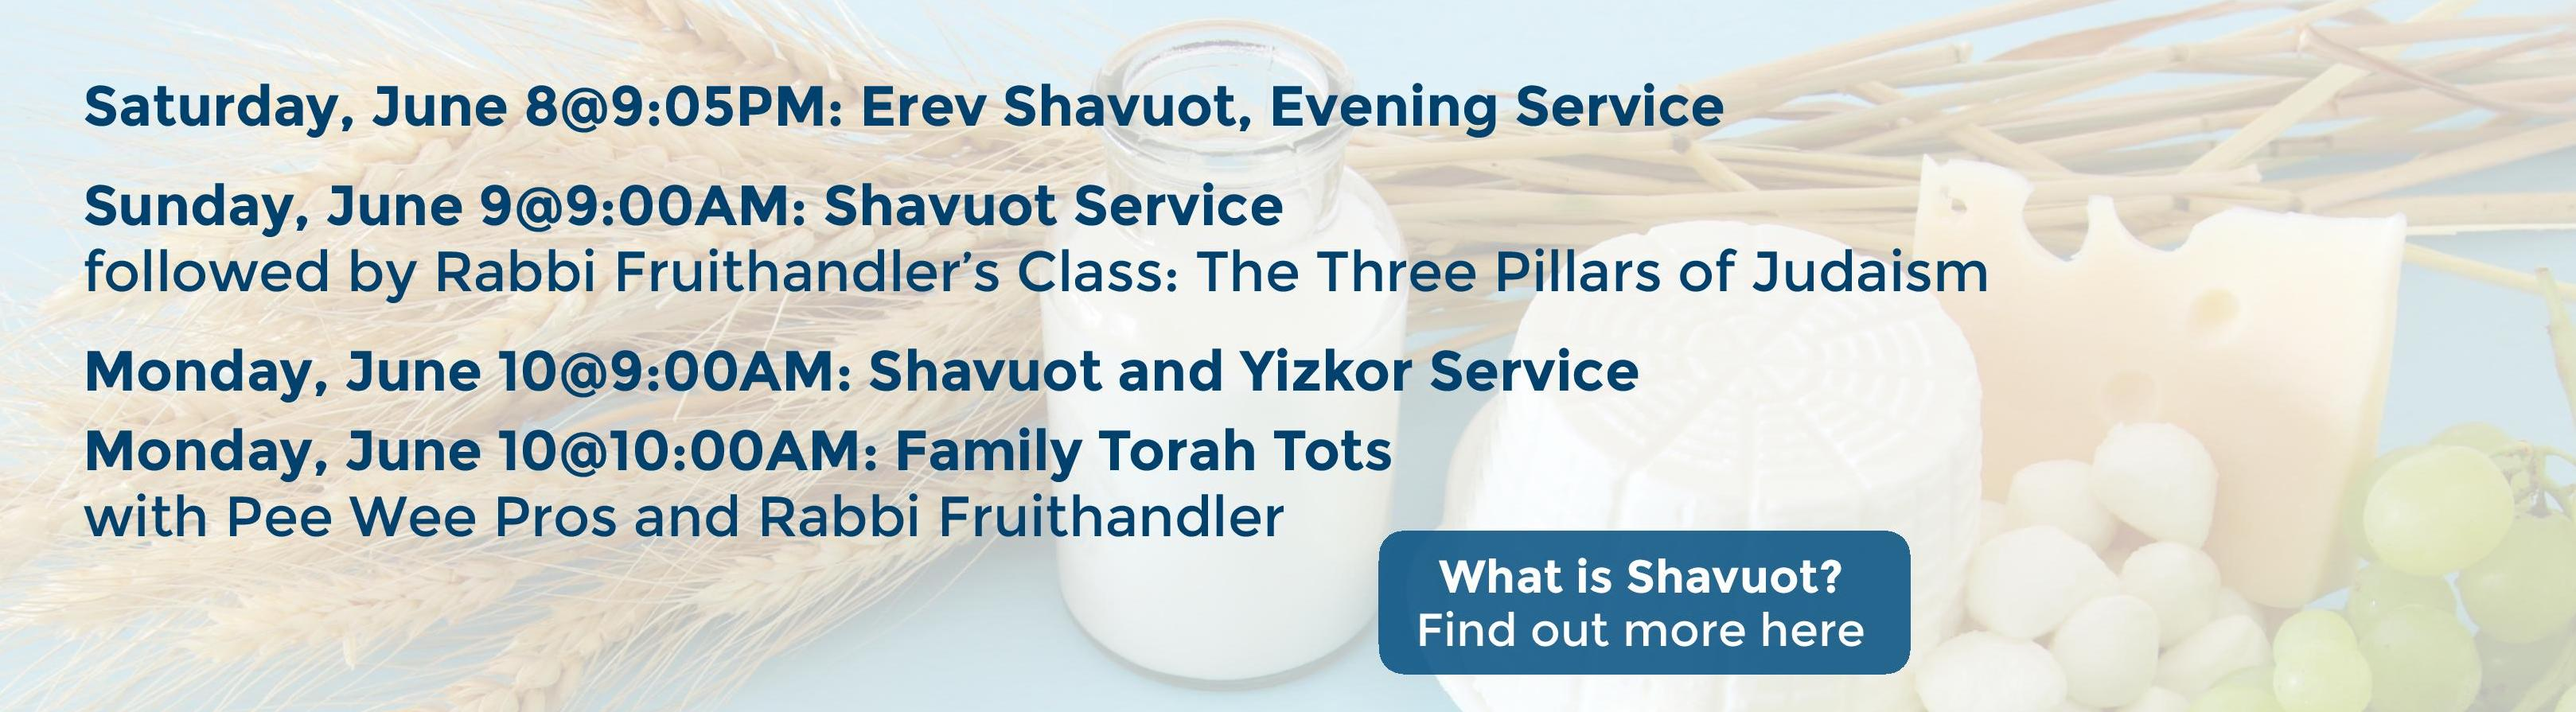 """<a href=""""https://www.woodburyjc.org/holidays""""                                     target="""""""">                                                                 <span class=""""slider_title"""">                                     Shavuot at WJC                                </span>                                                                 </a>                                                                                                                                                                                       <span class=""""slider_description"""">Come celebrate with us!</span>"""